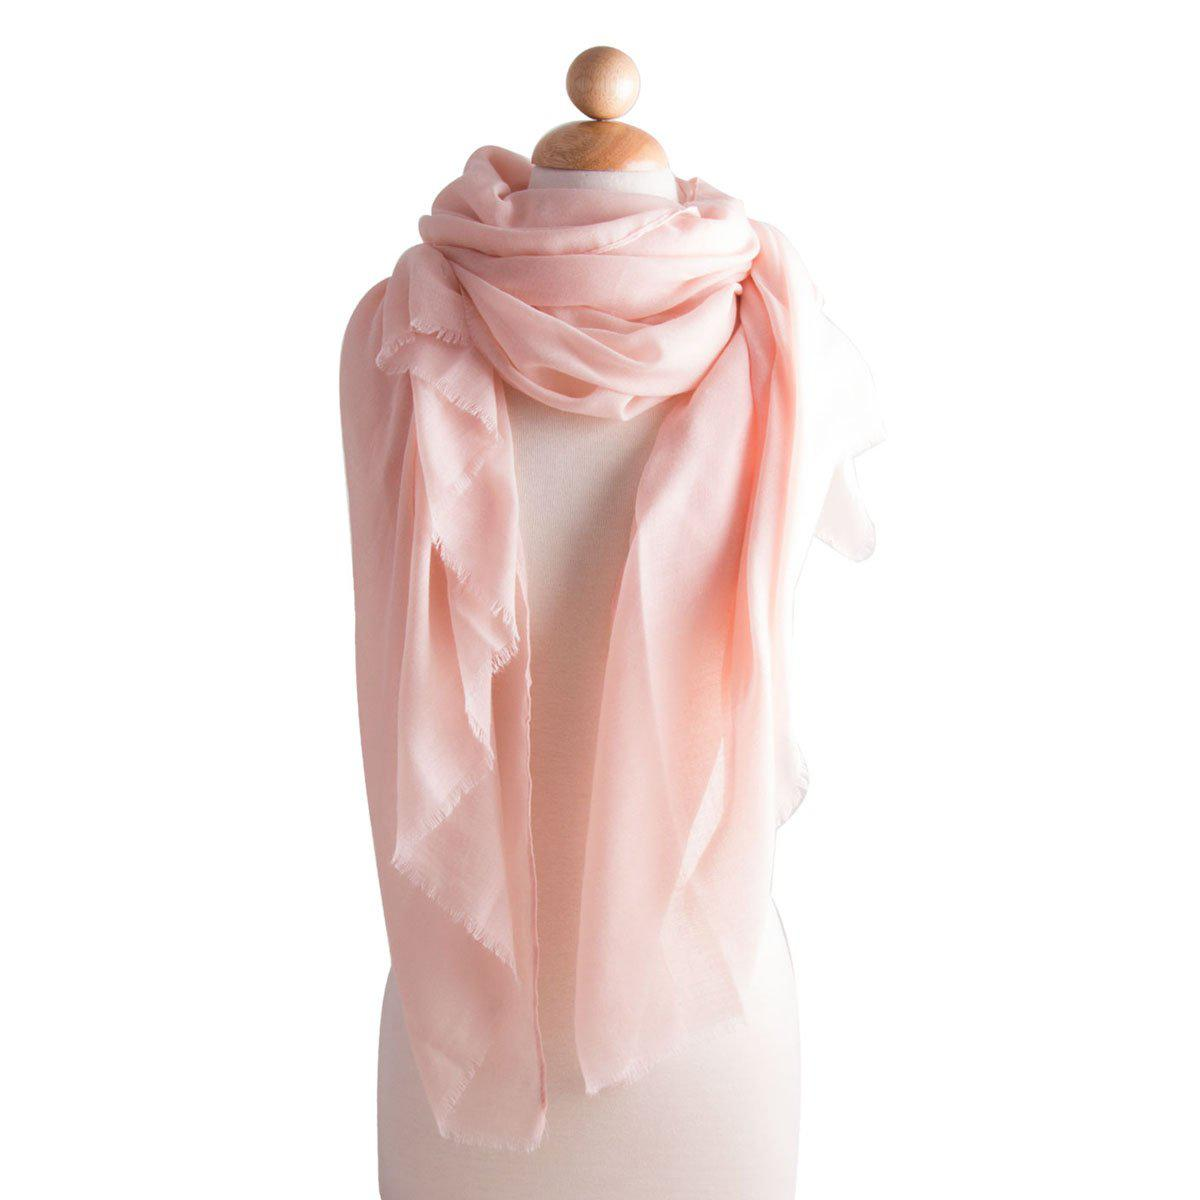 Scarf-hat-Lizzy Pink Boutique-Lizzy's Pink Boutique